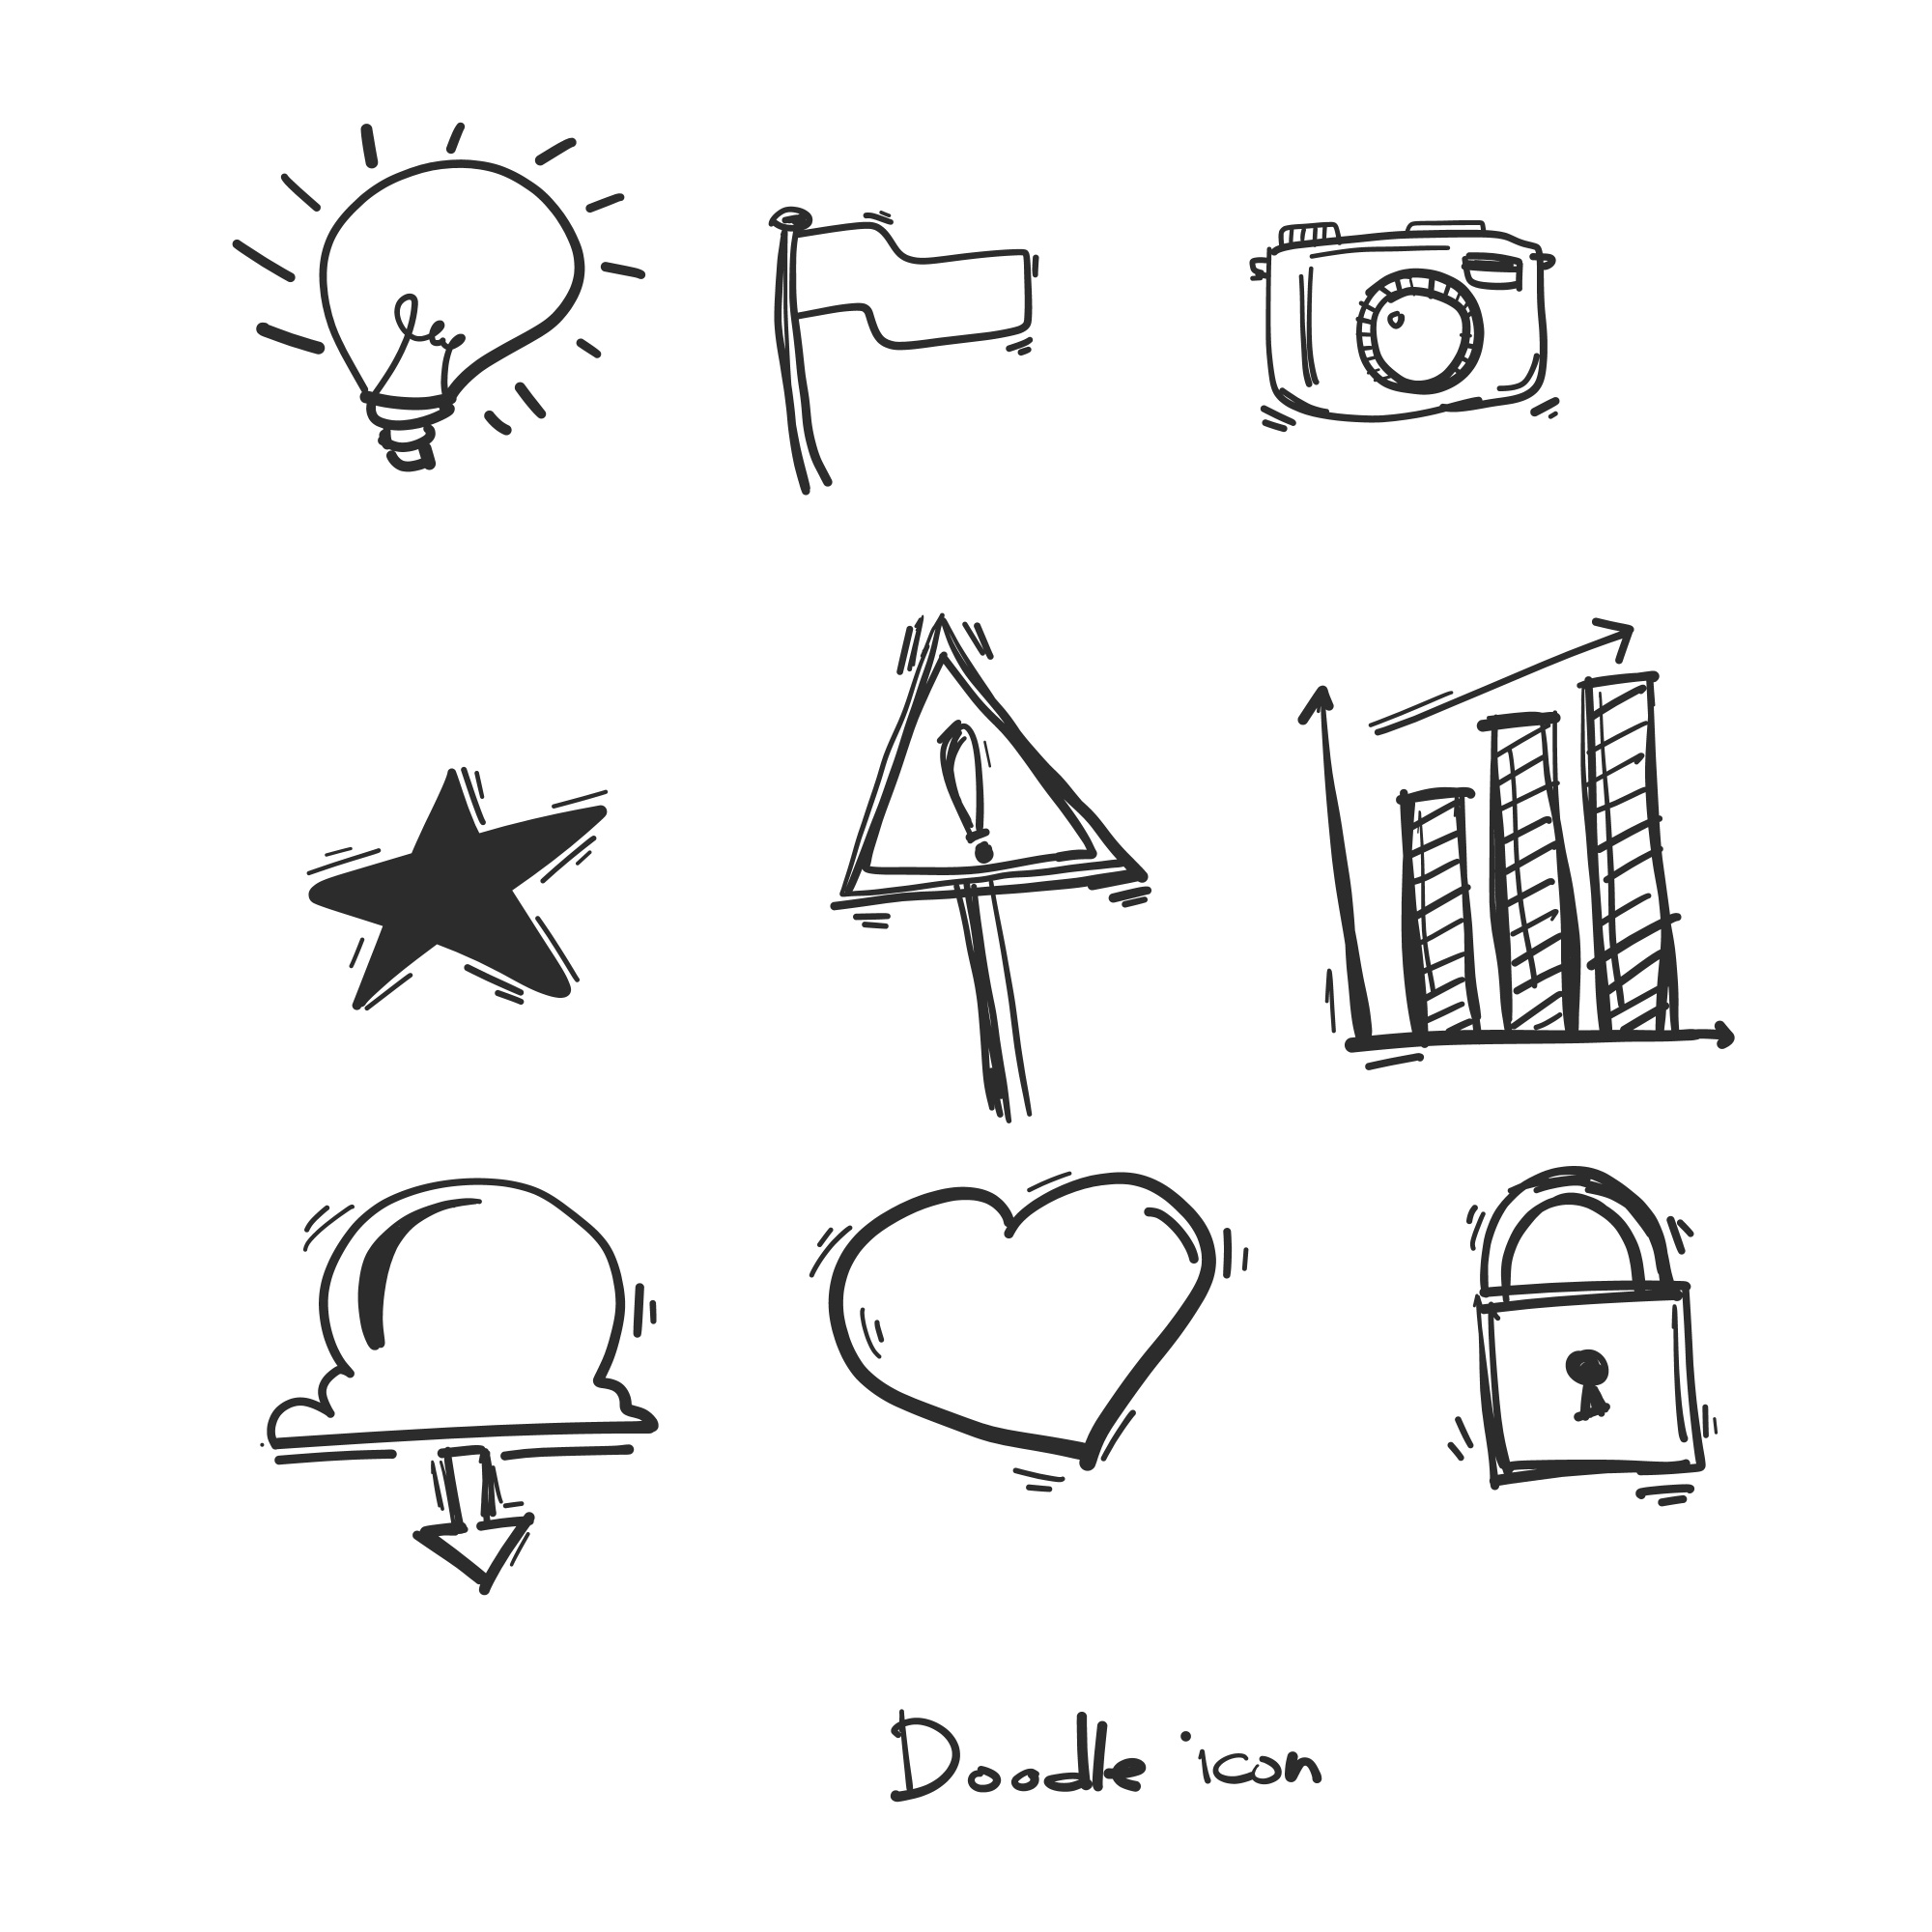 Hand drawn doodle icons